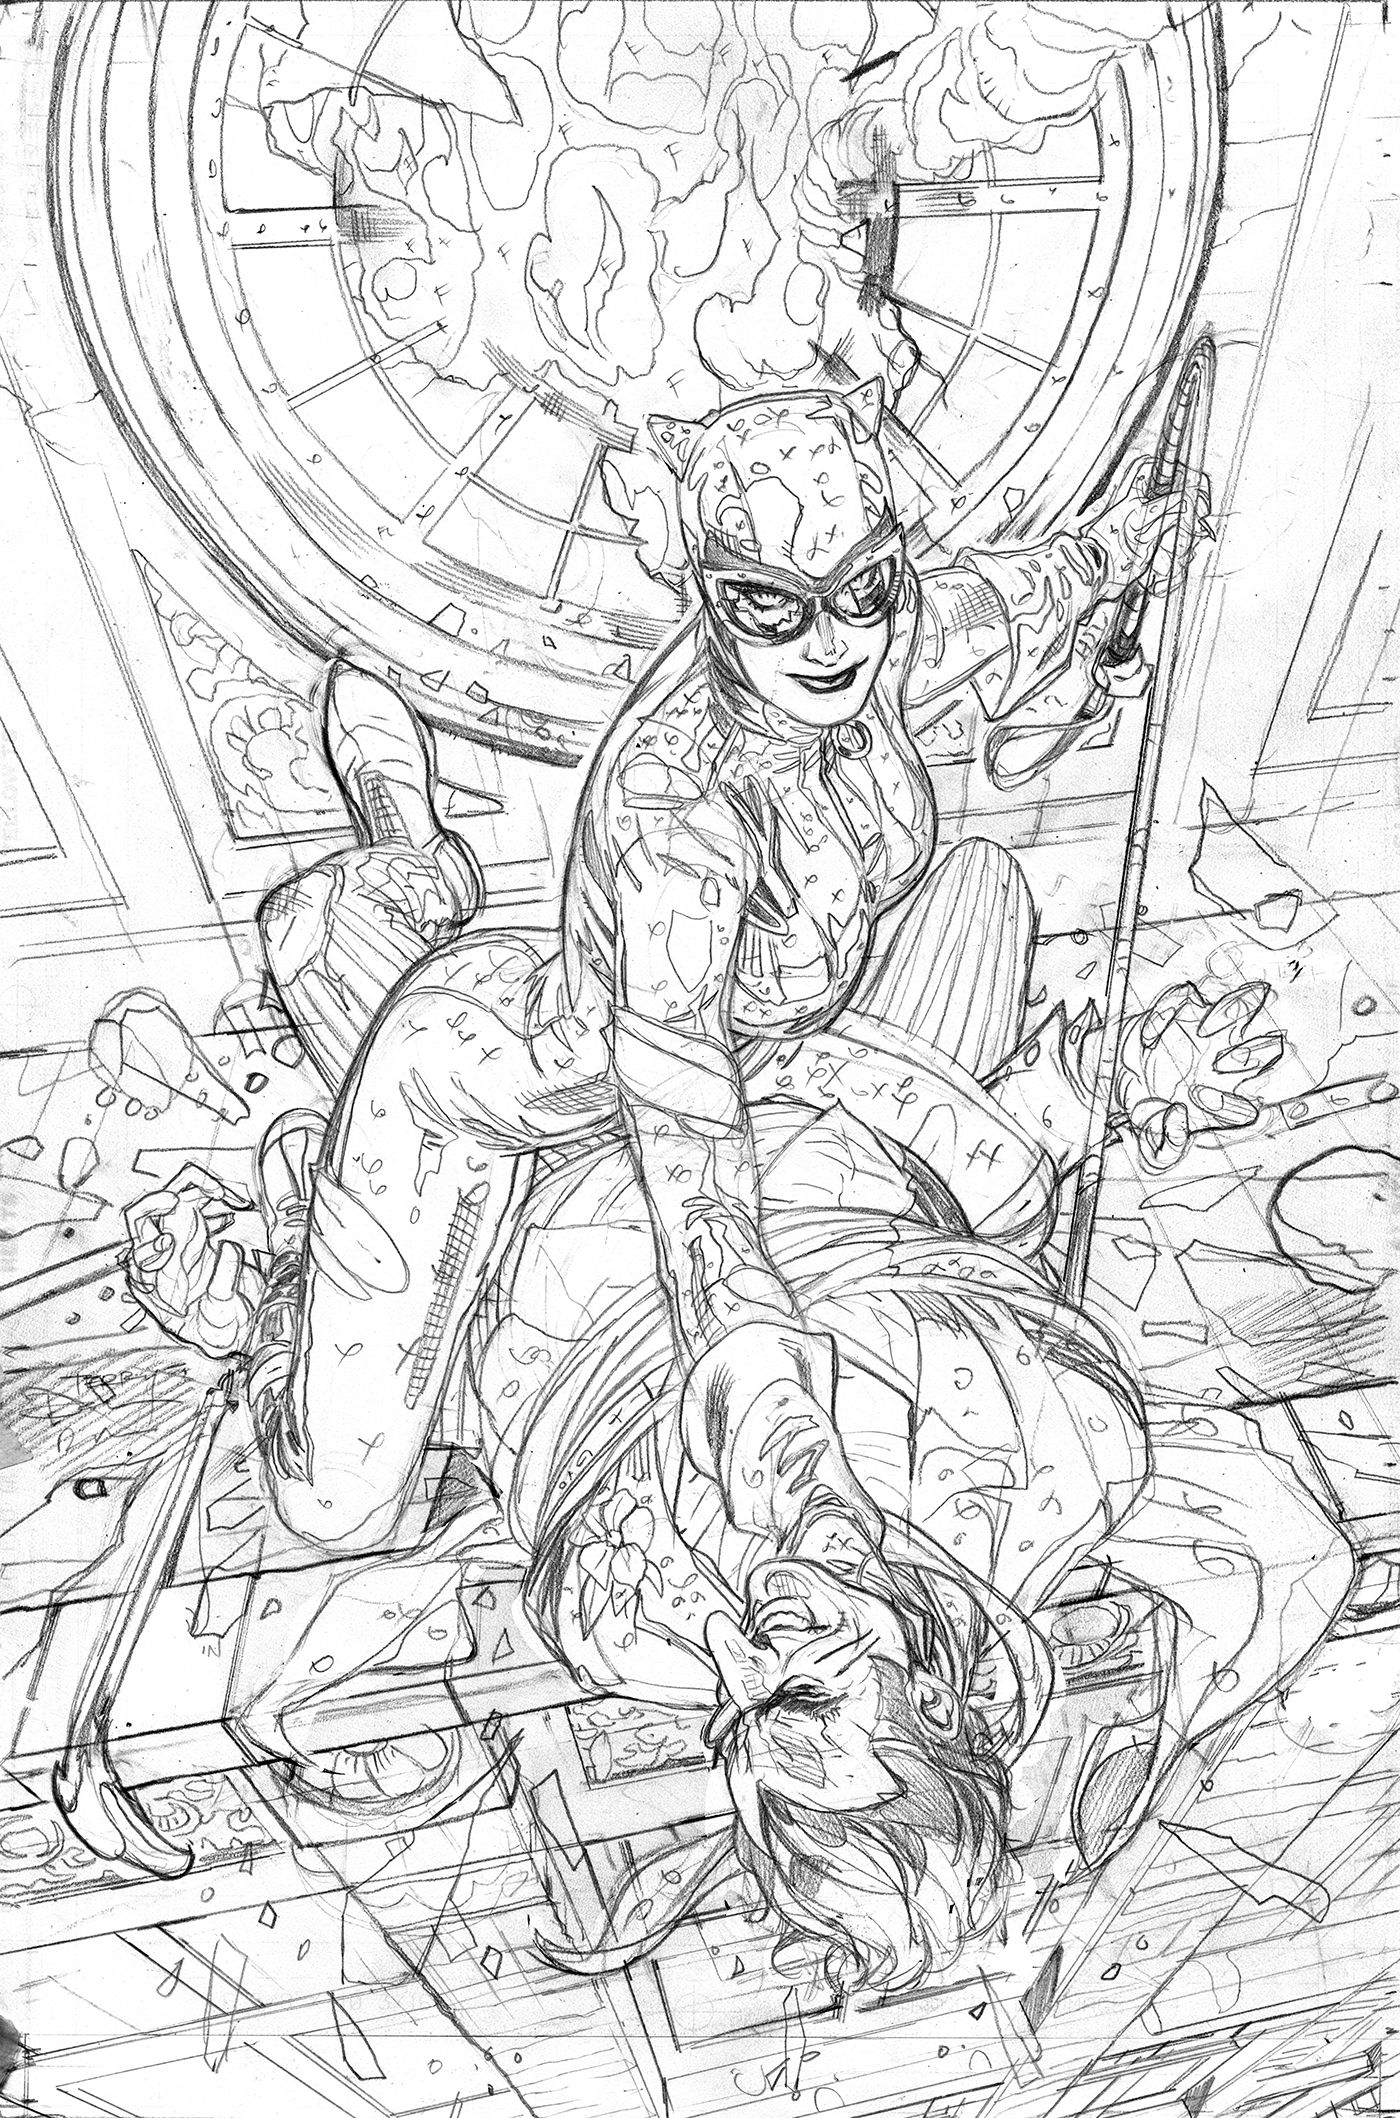 catwoman printable coloring pages catwoman coloring pages sescatwonmen colouring pages pages coloring catwoman printable